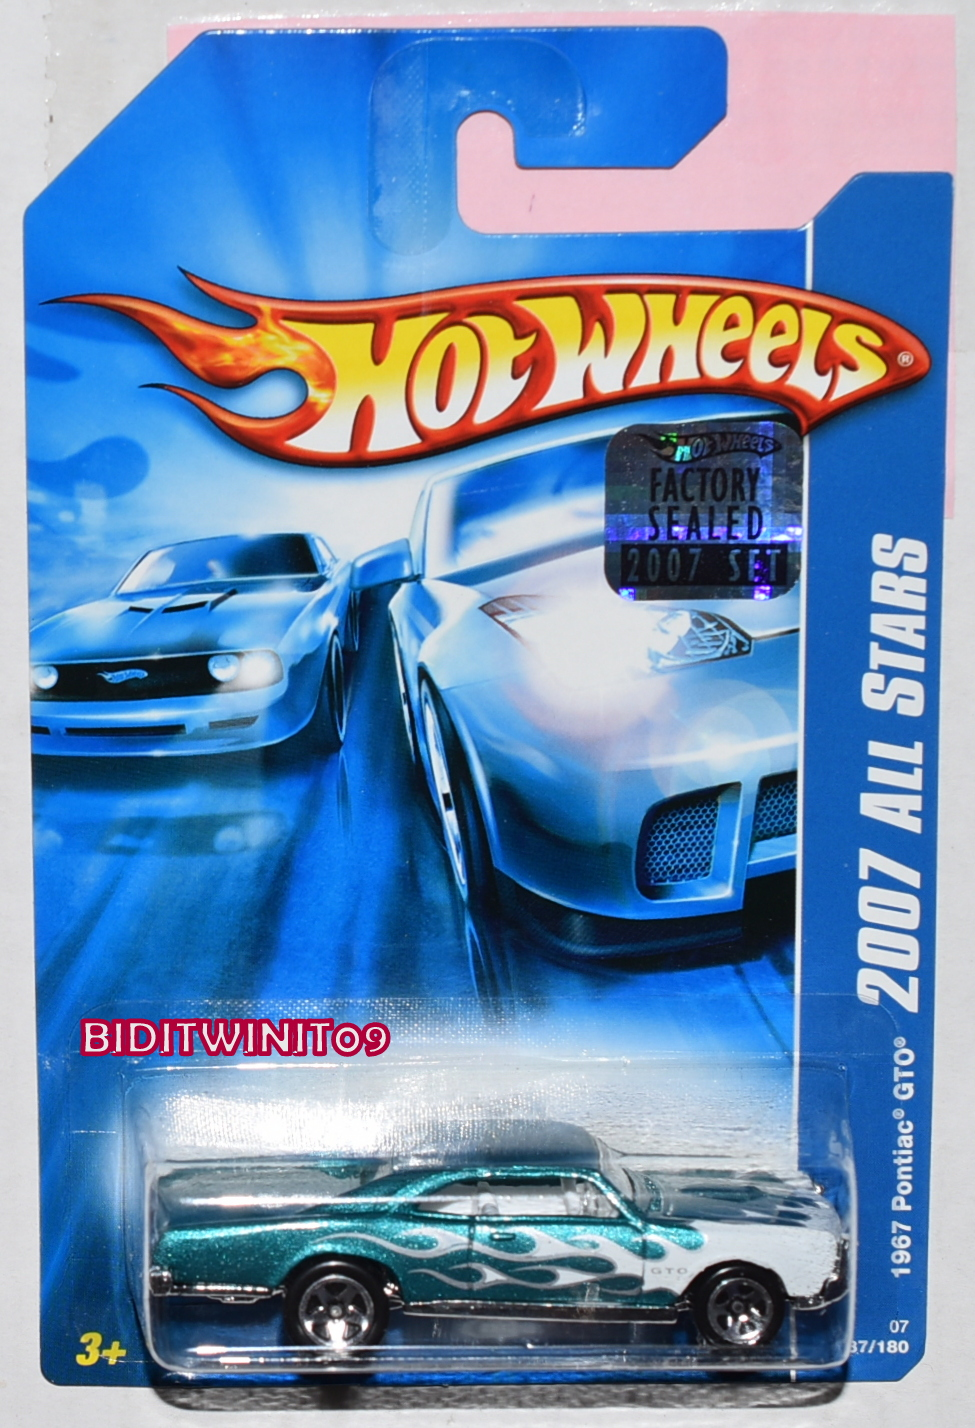 HOT WHEELS 2007 ALL STARS 1967 PONTIAC GTO GREEN FACTORY SEALED